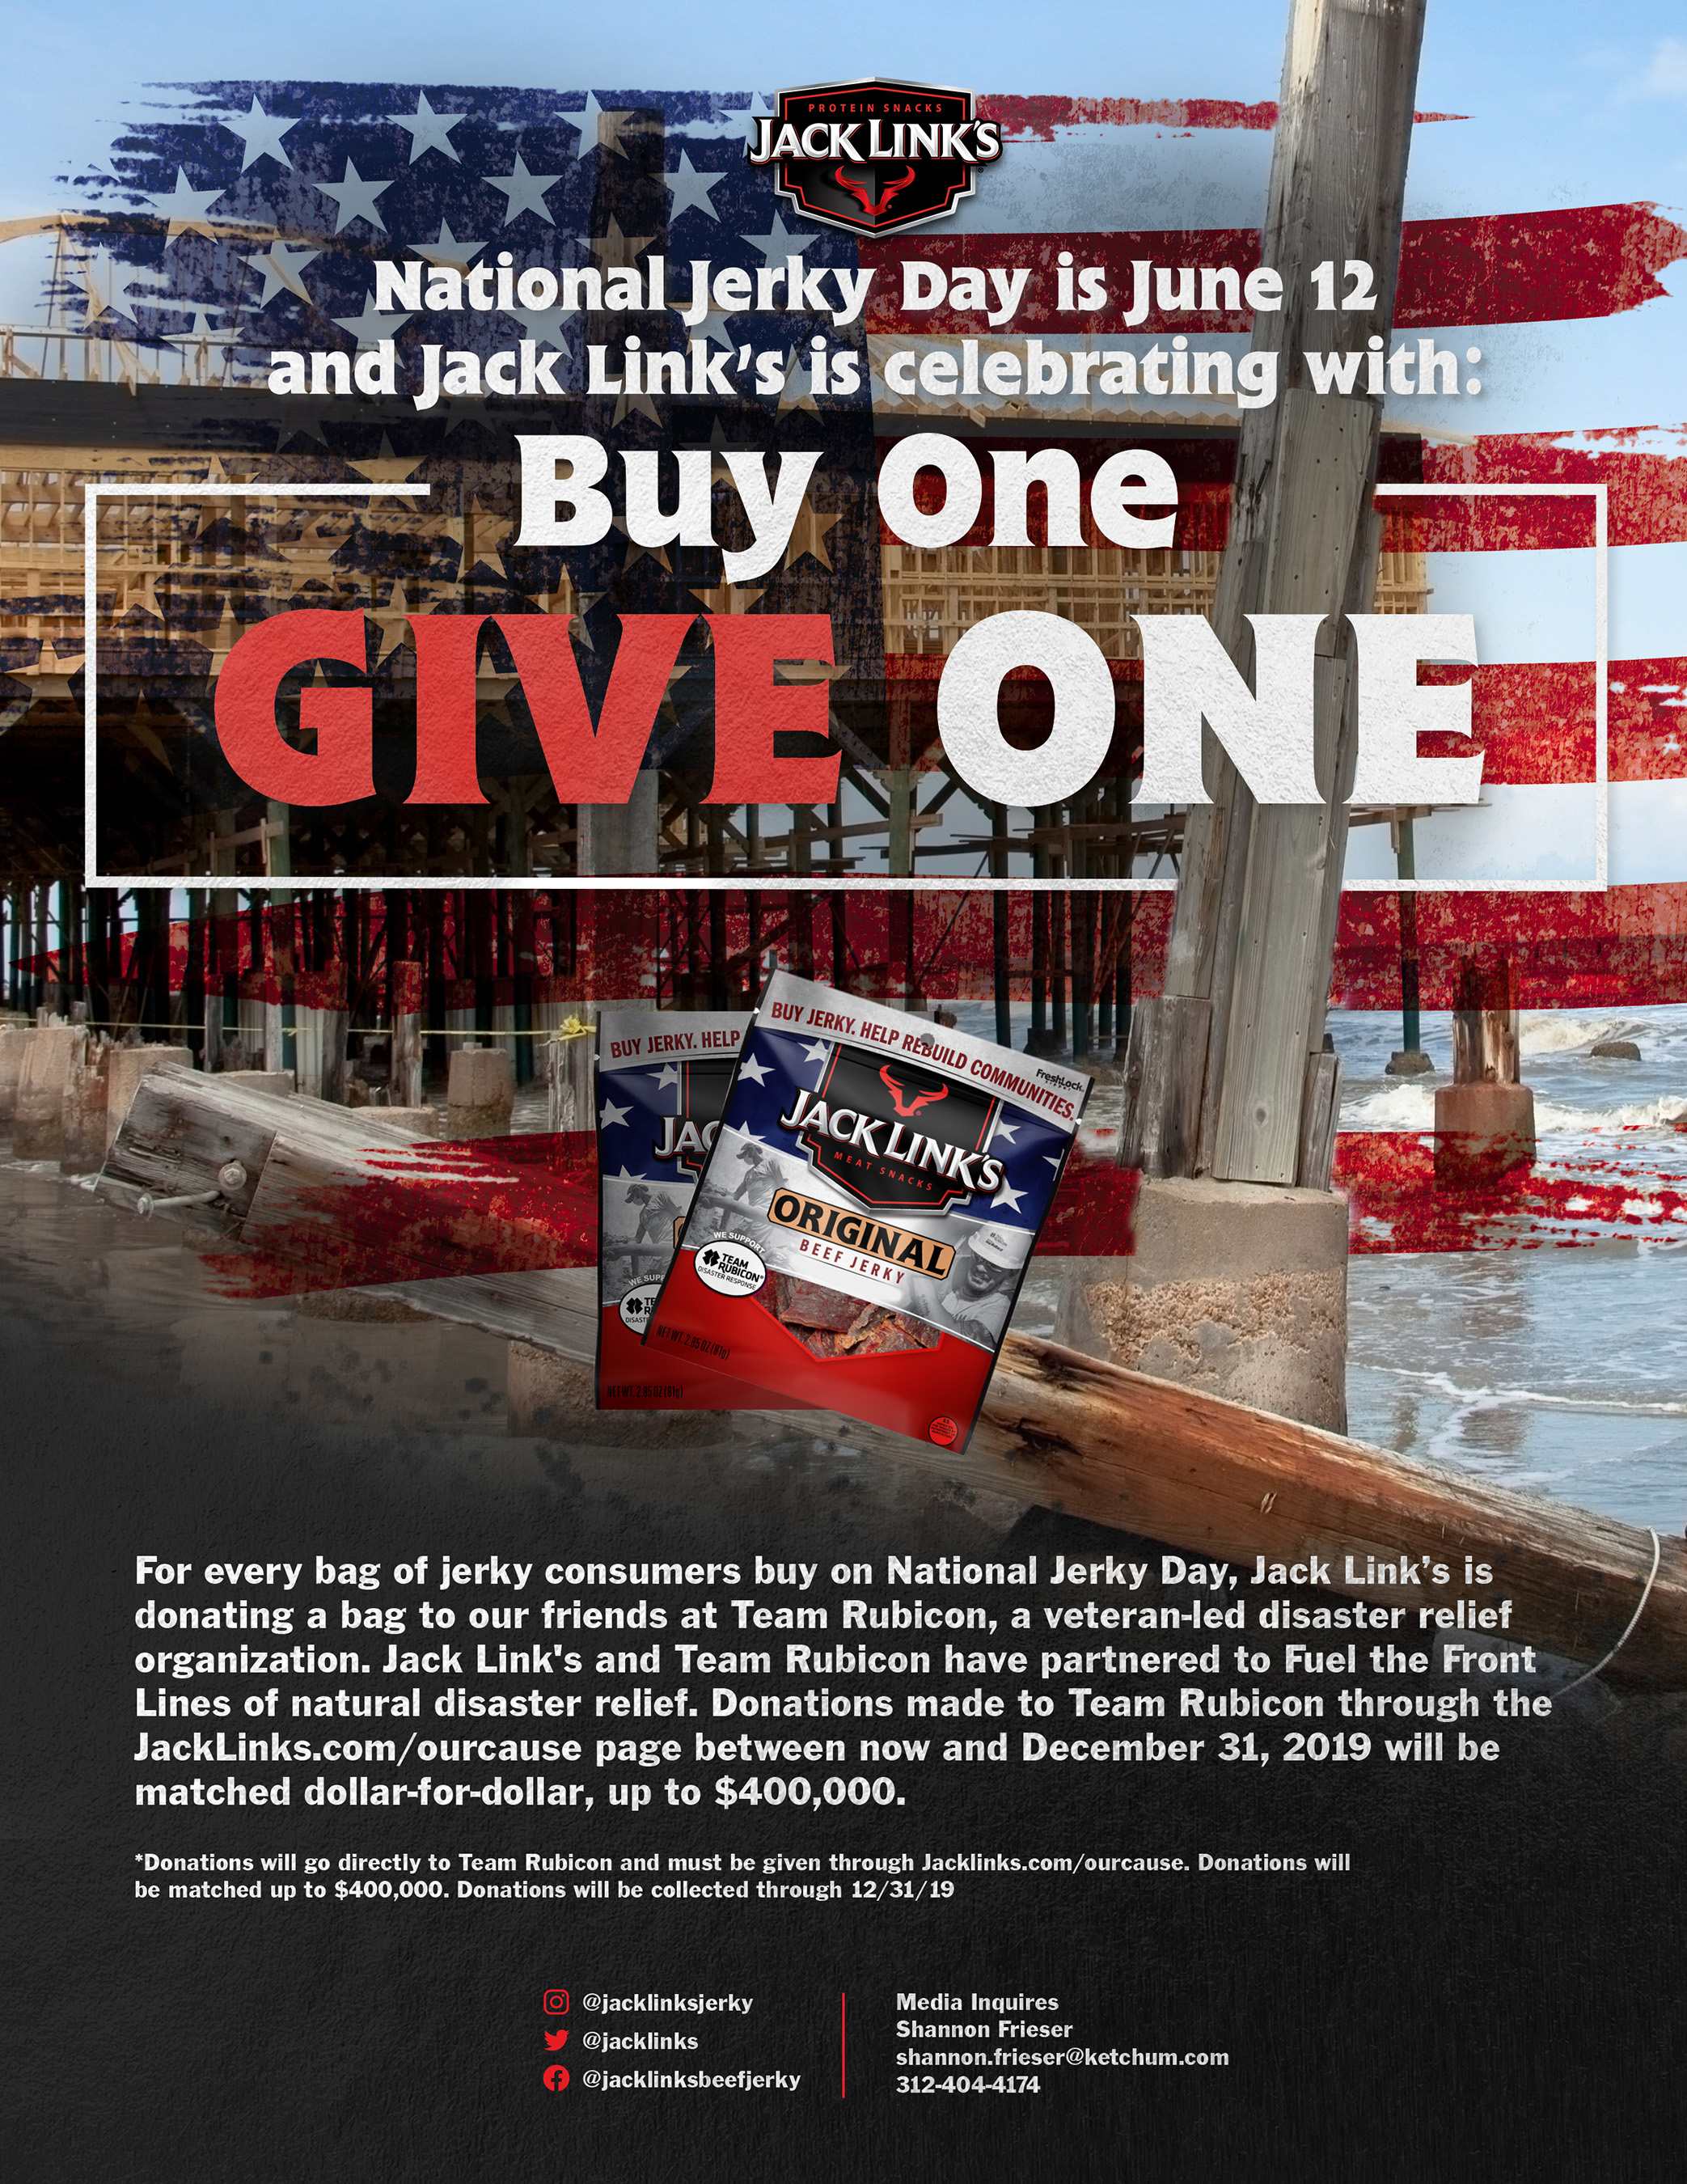 During National Jerky Day (June 12), for every bag of jerky purchased in-store and online, Jack Link's will donate a bag to Team Rubicon volunteers to fuel disaster relief efforts.